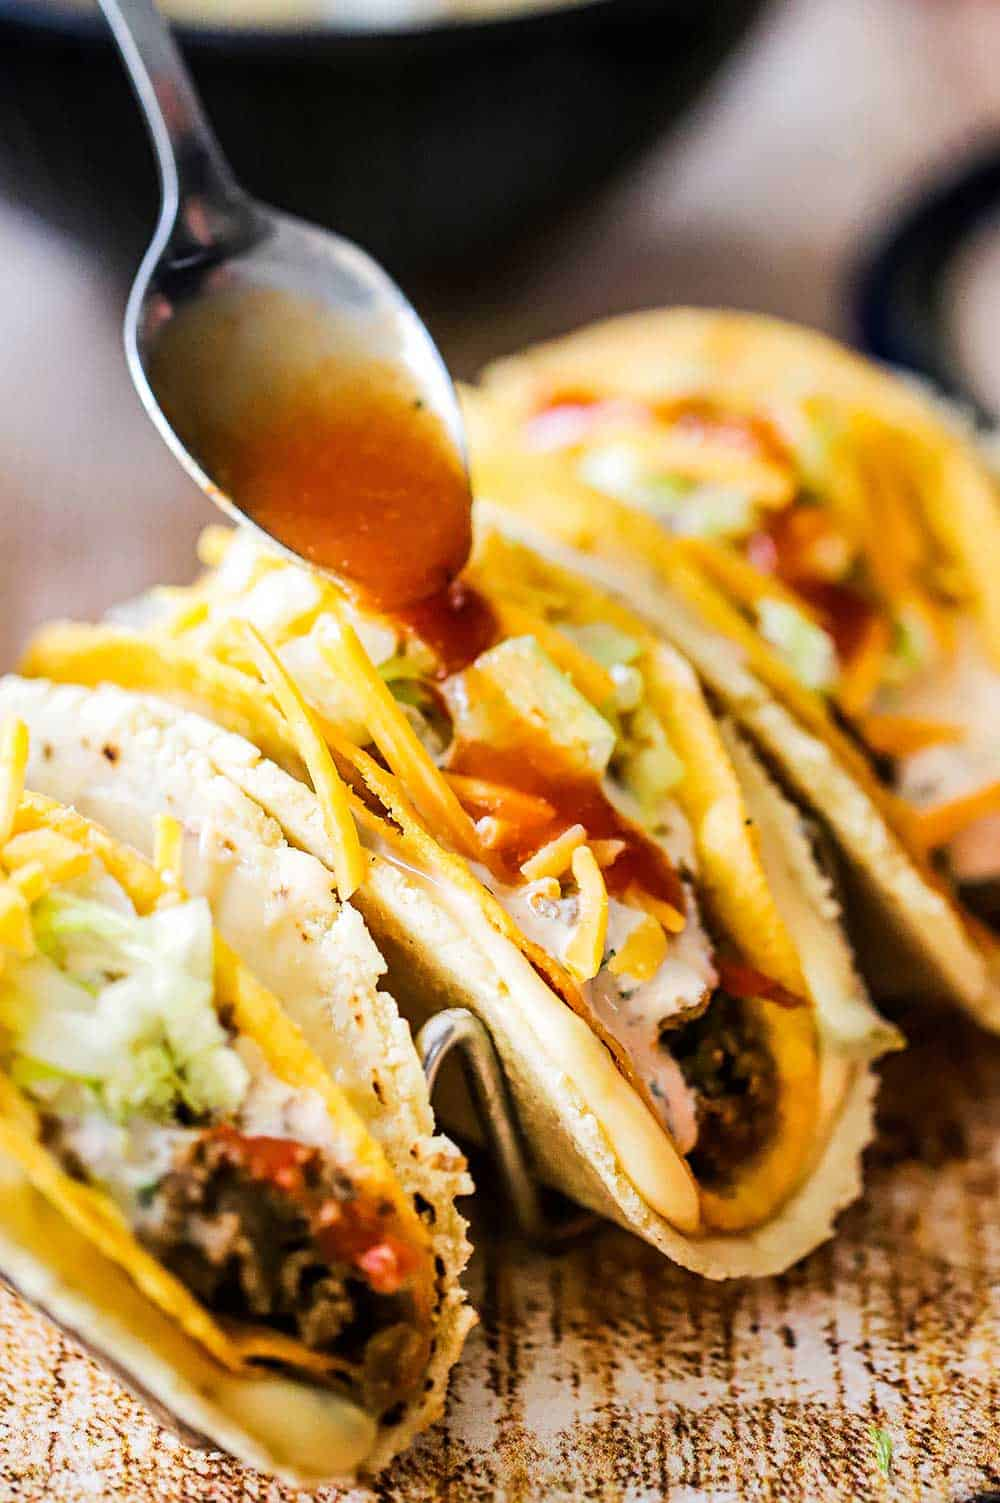 A spoon pouring taco sauce over the top of three stuffed tacos sitting on a metal taco holder.